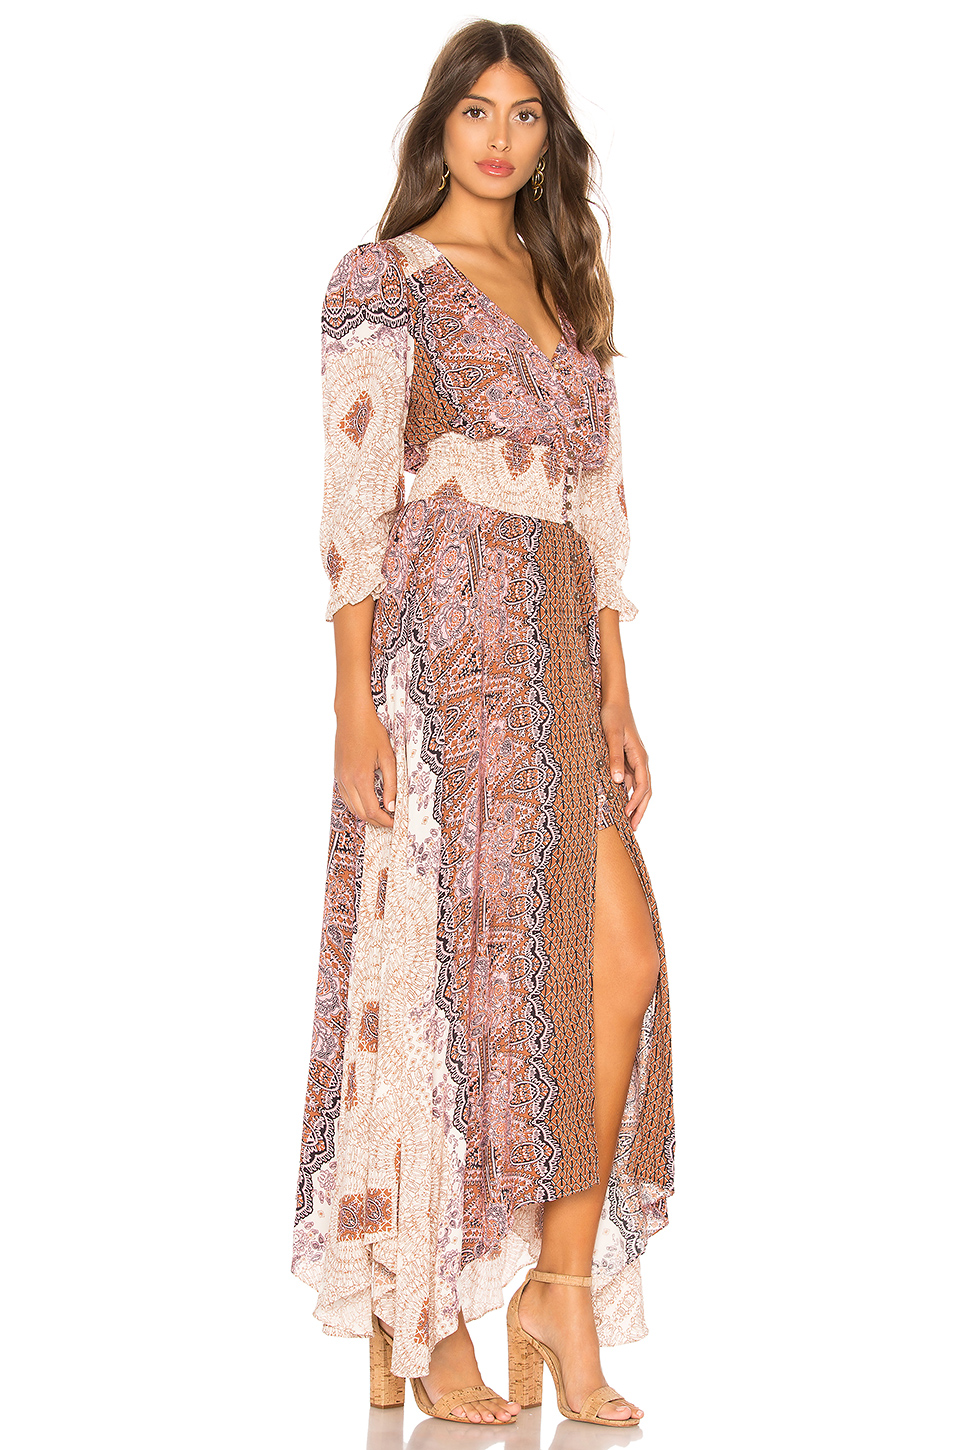 85ed713bf93 Buy Original Free People Mexicali Rose Maxi Dress at Indonesia ...